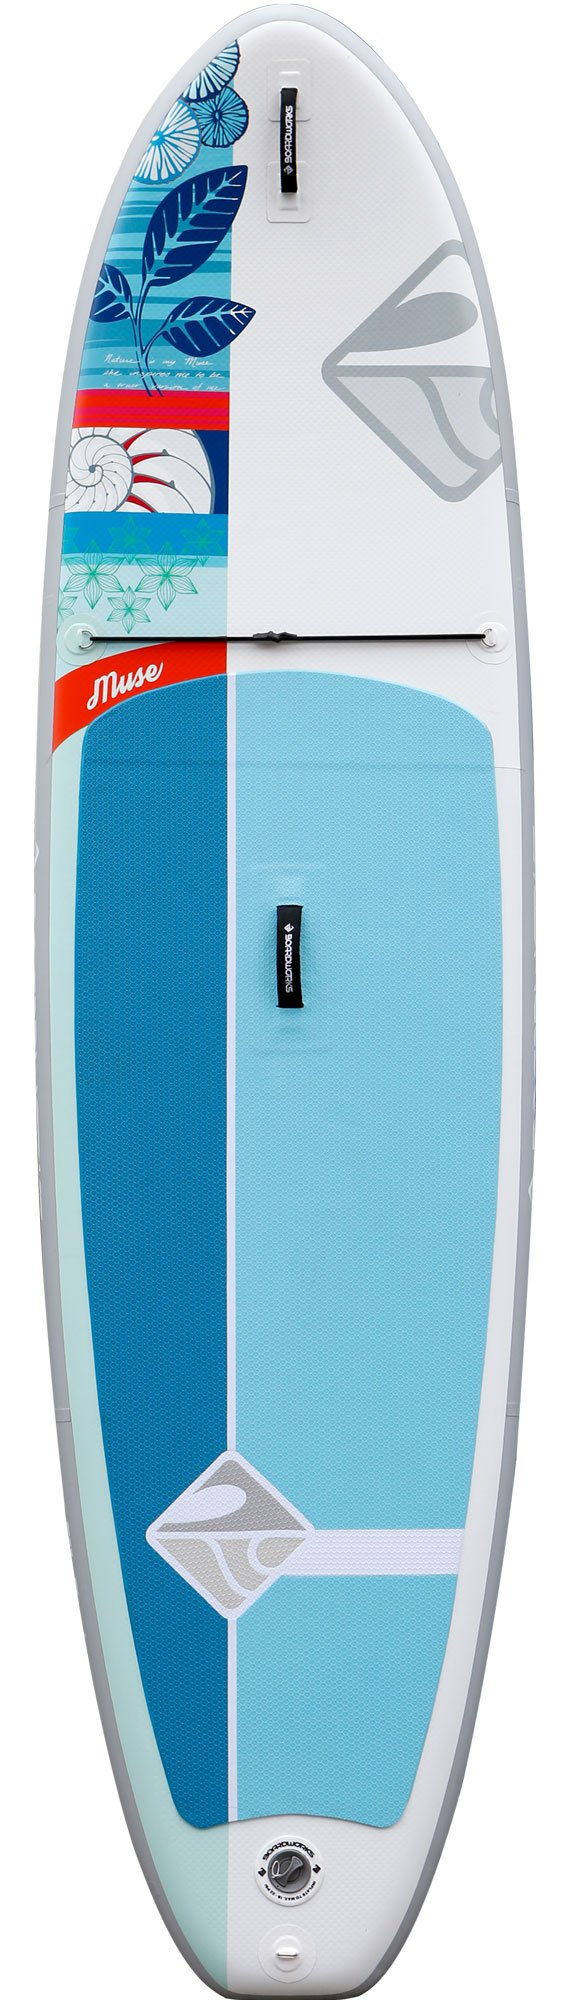 Boardworks SHUBU Muse 10'2'' Inflatable Stand-Up Paddle Board (SUP) by Boardworks